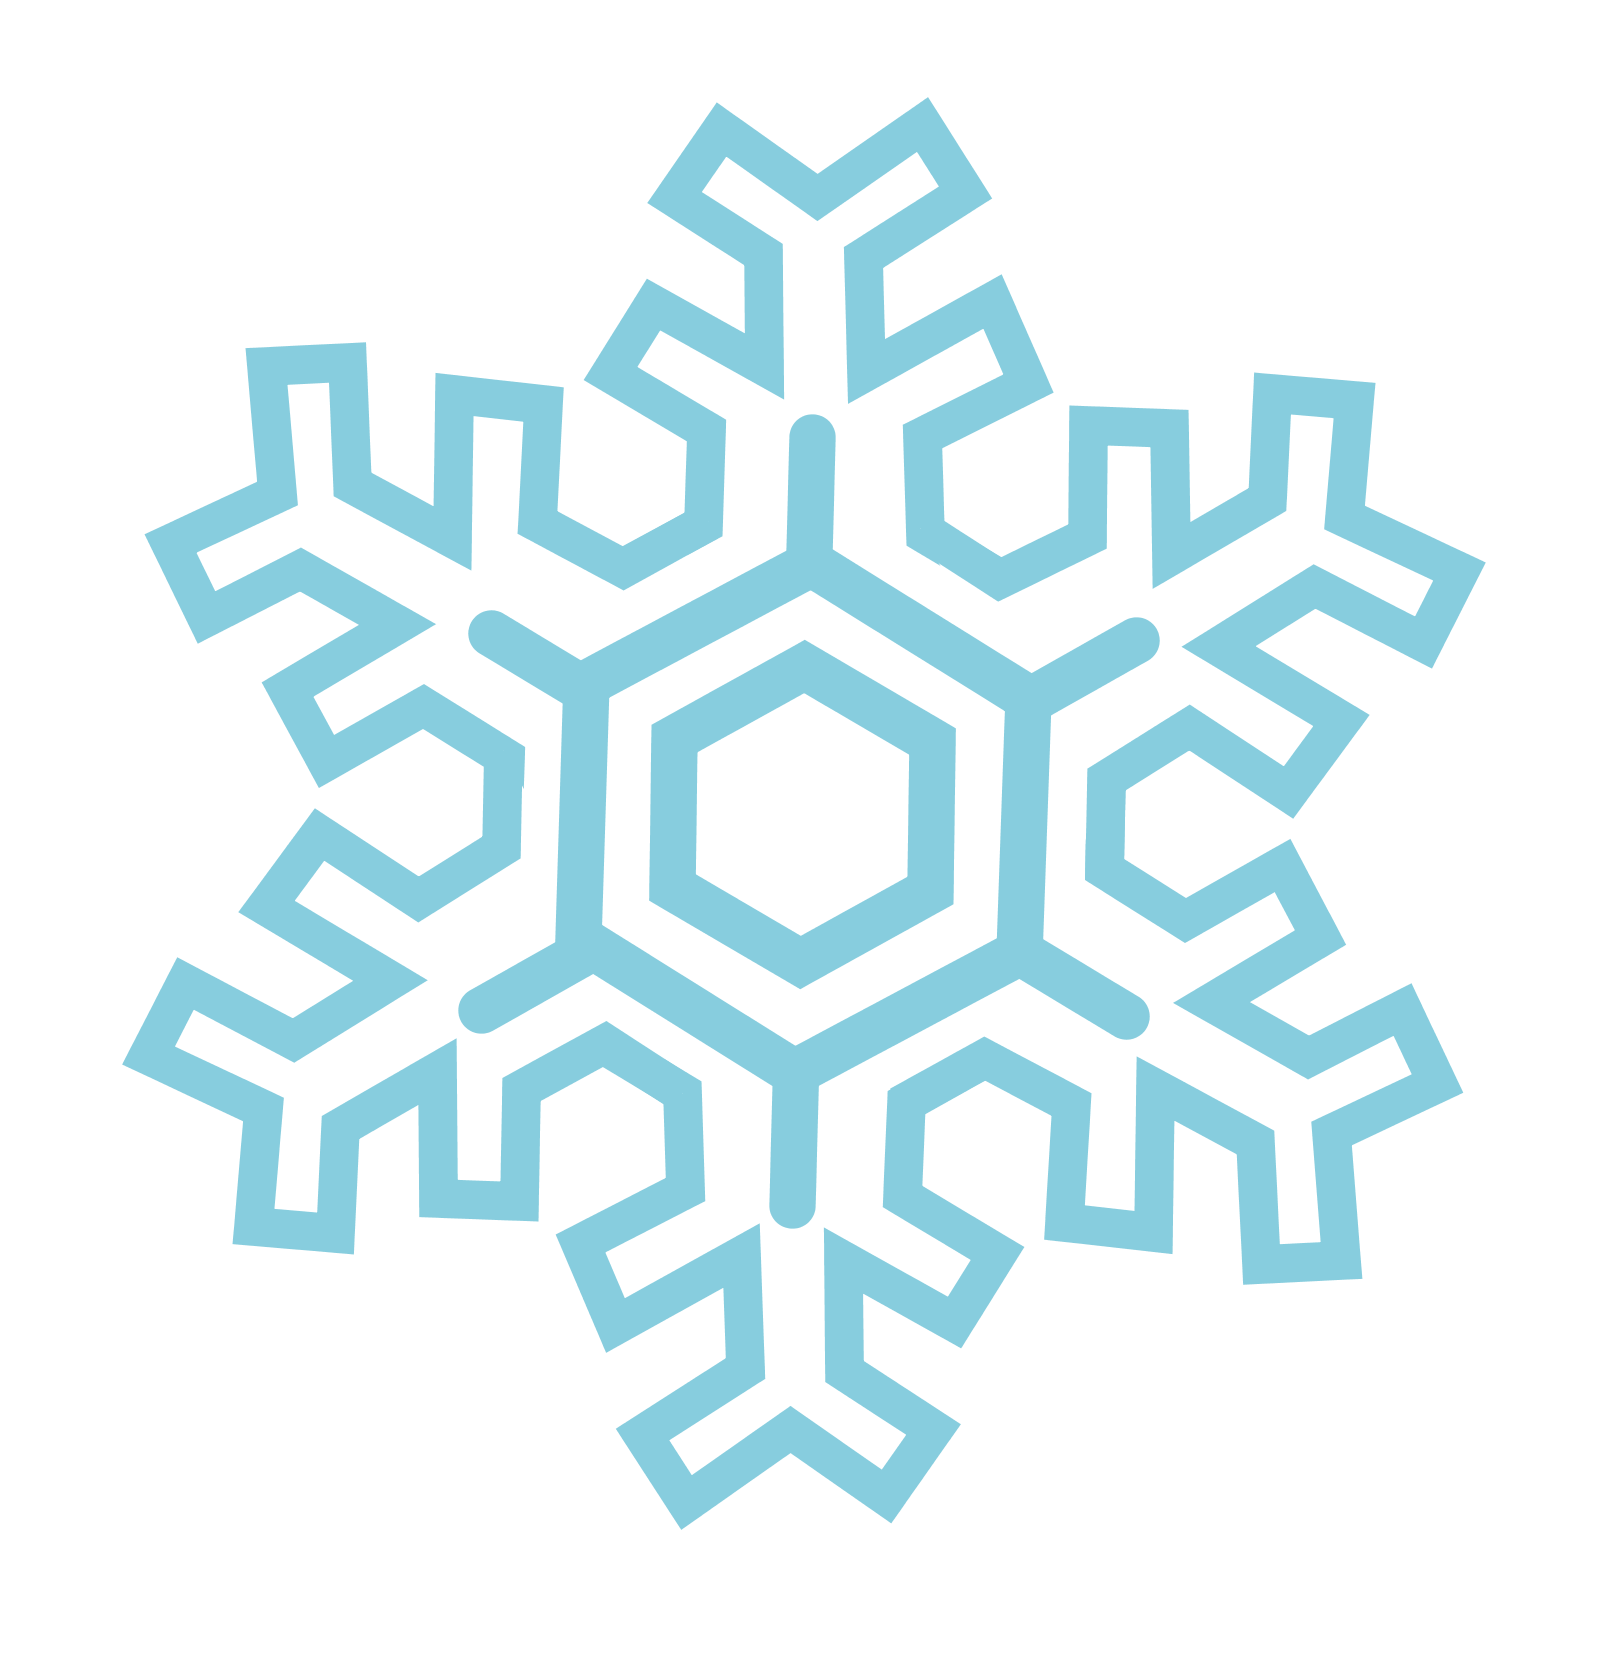 Stylized Snowflakes 20159 Download Royalty Free Vector Eps Clipart